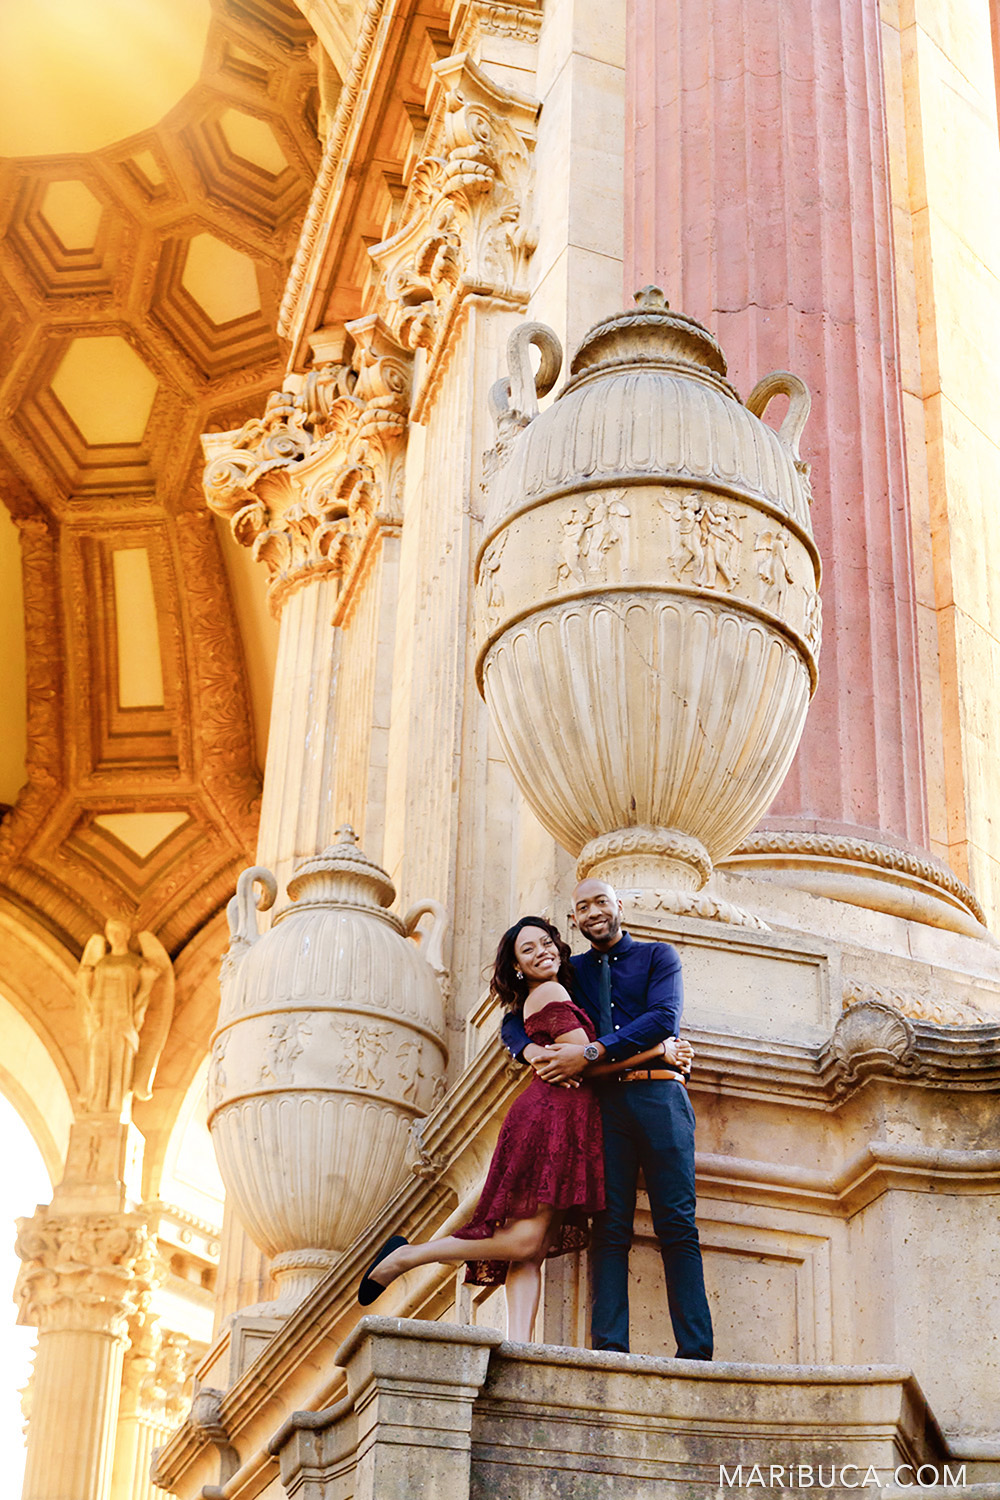 Fiance and fiancee hug each other and stand in the stairs of the San Francisco Palace of Fine Art